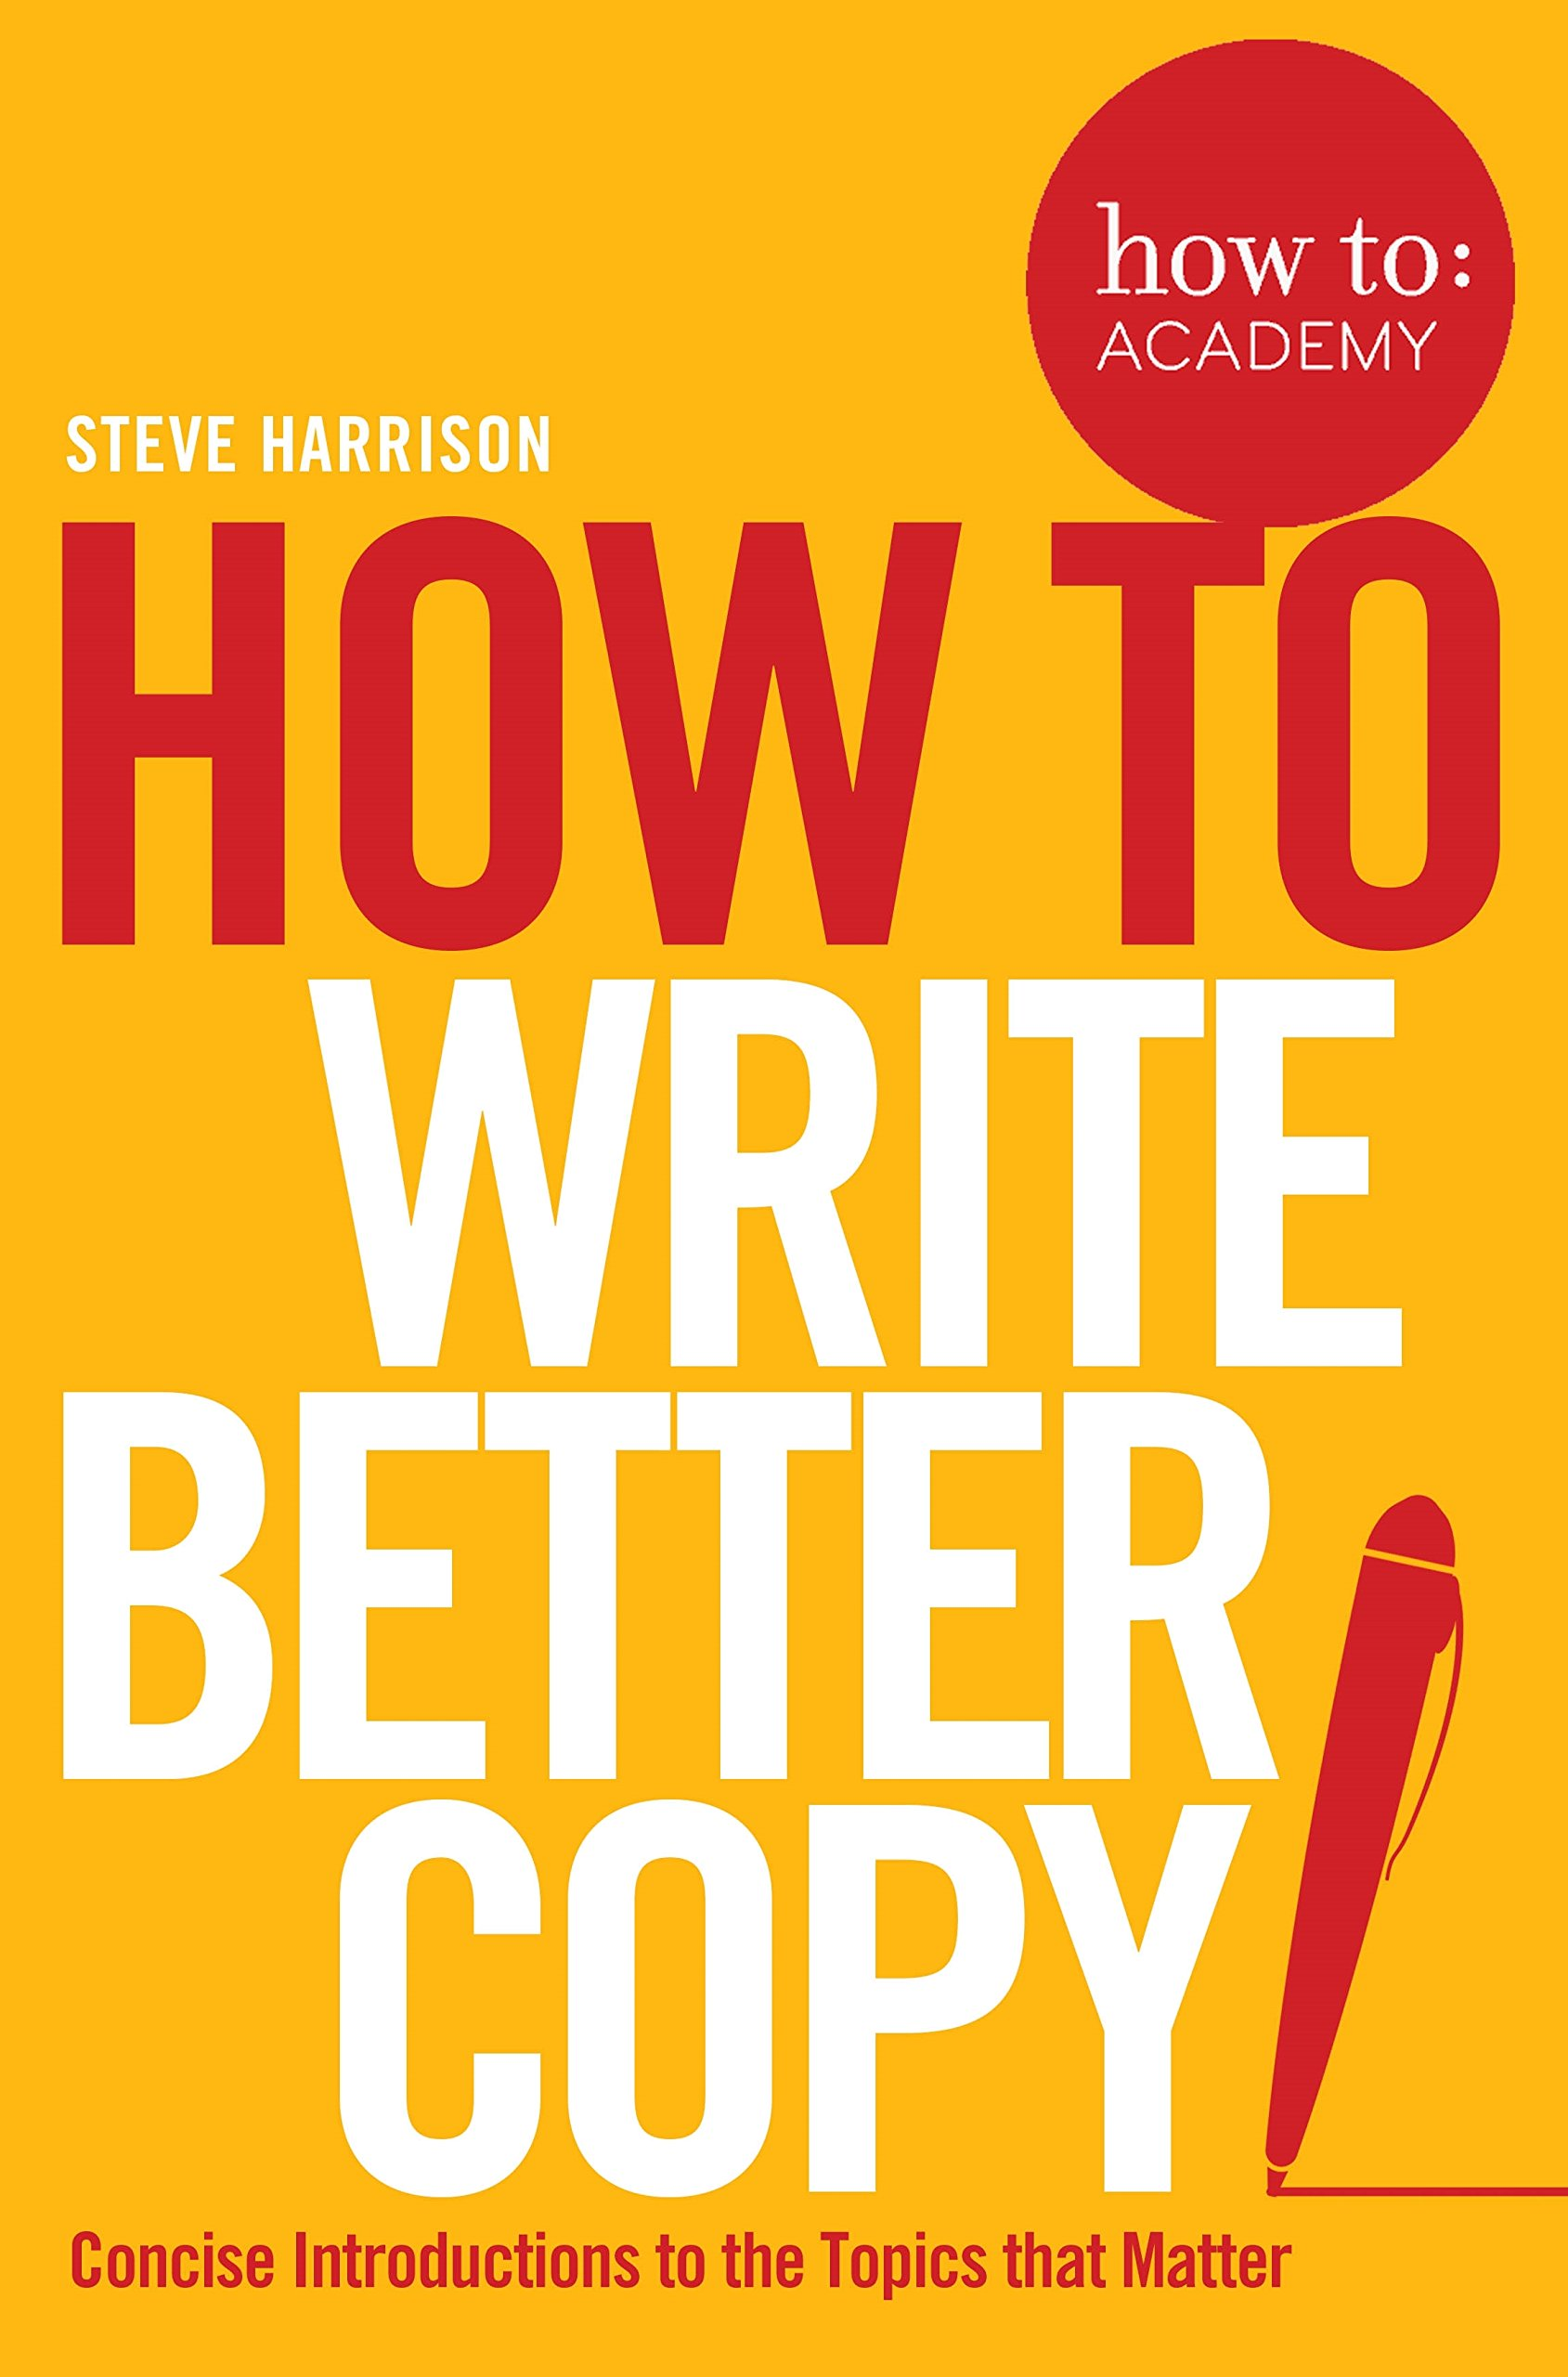 How to Write Better Copy (How To: Academy) PDF